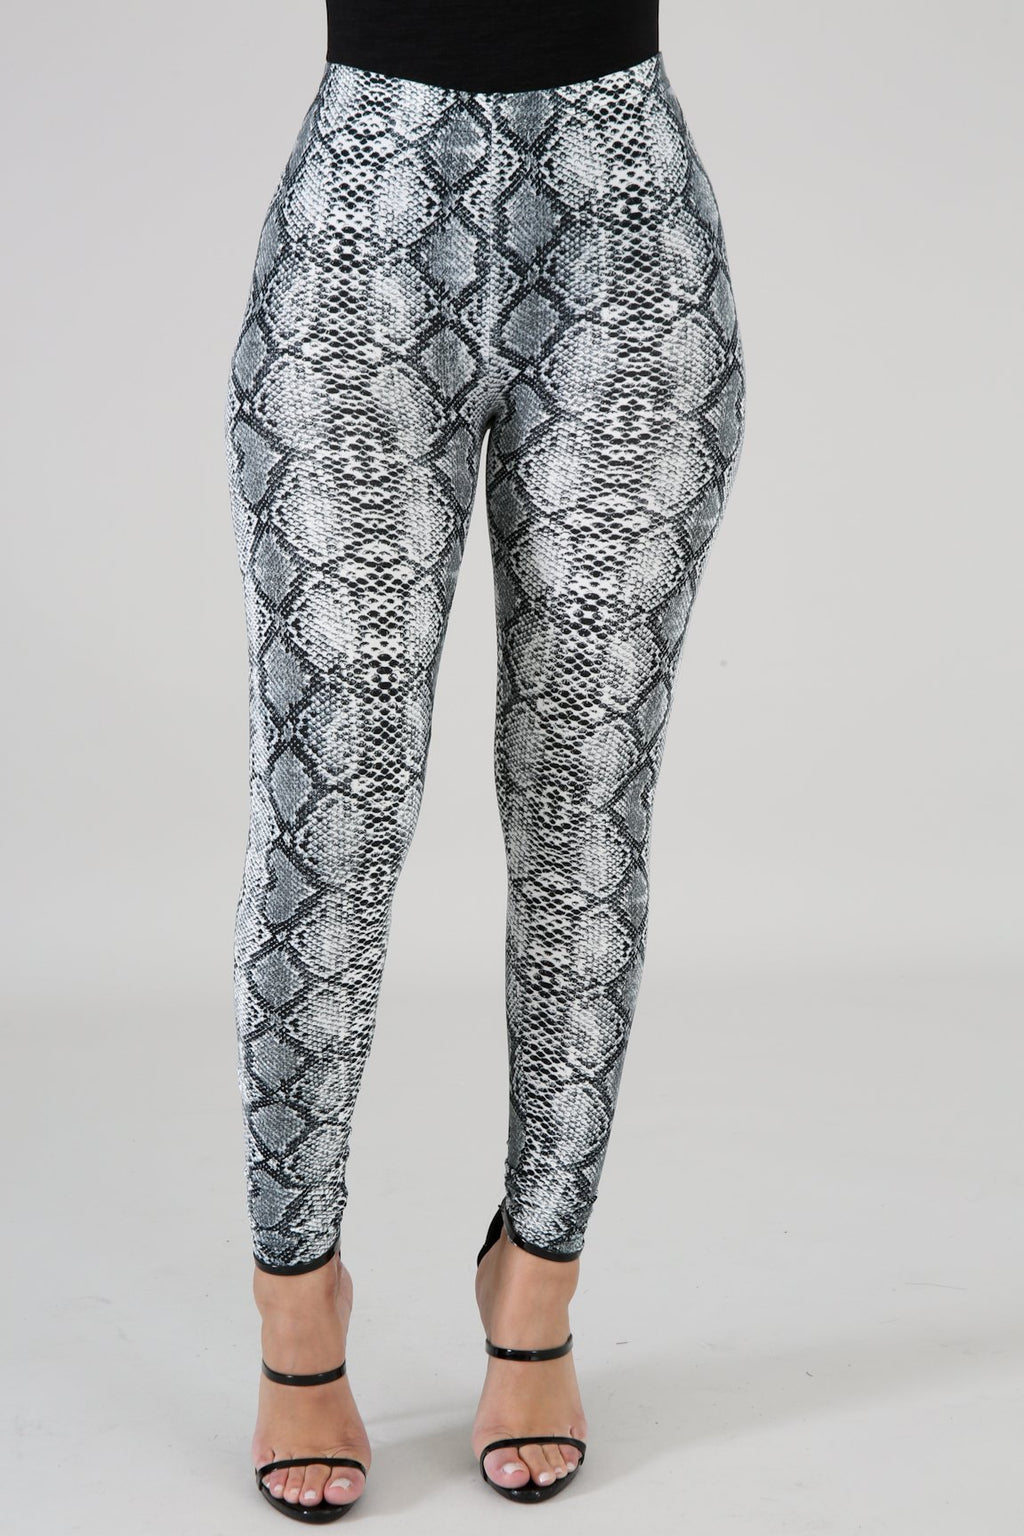 Bad Venom Pants - Slay Brand llc